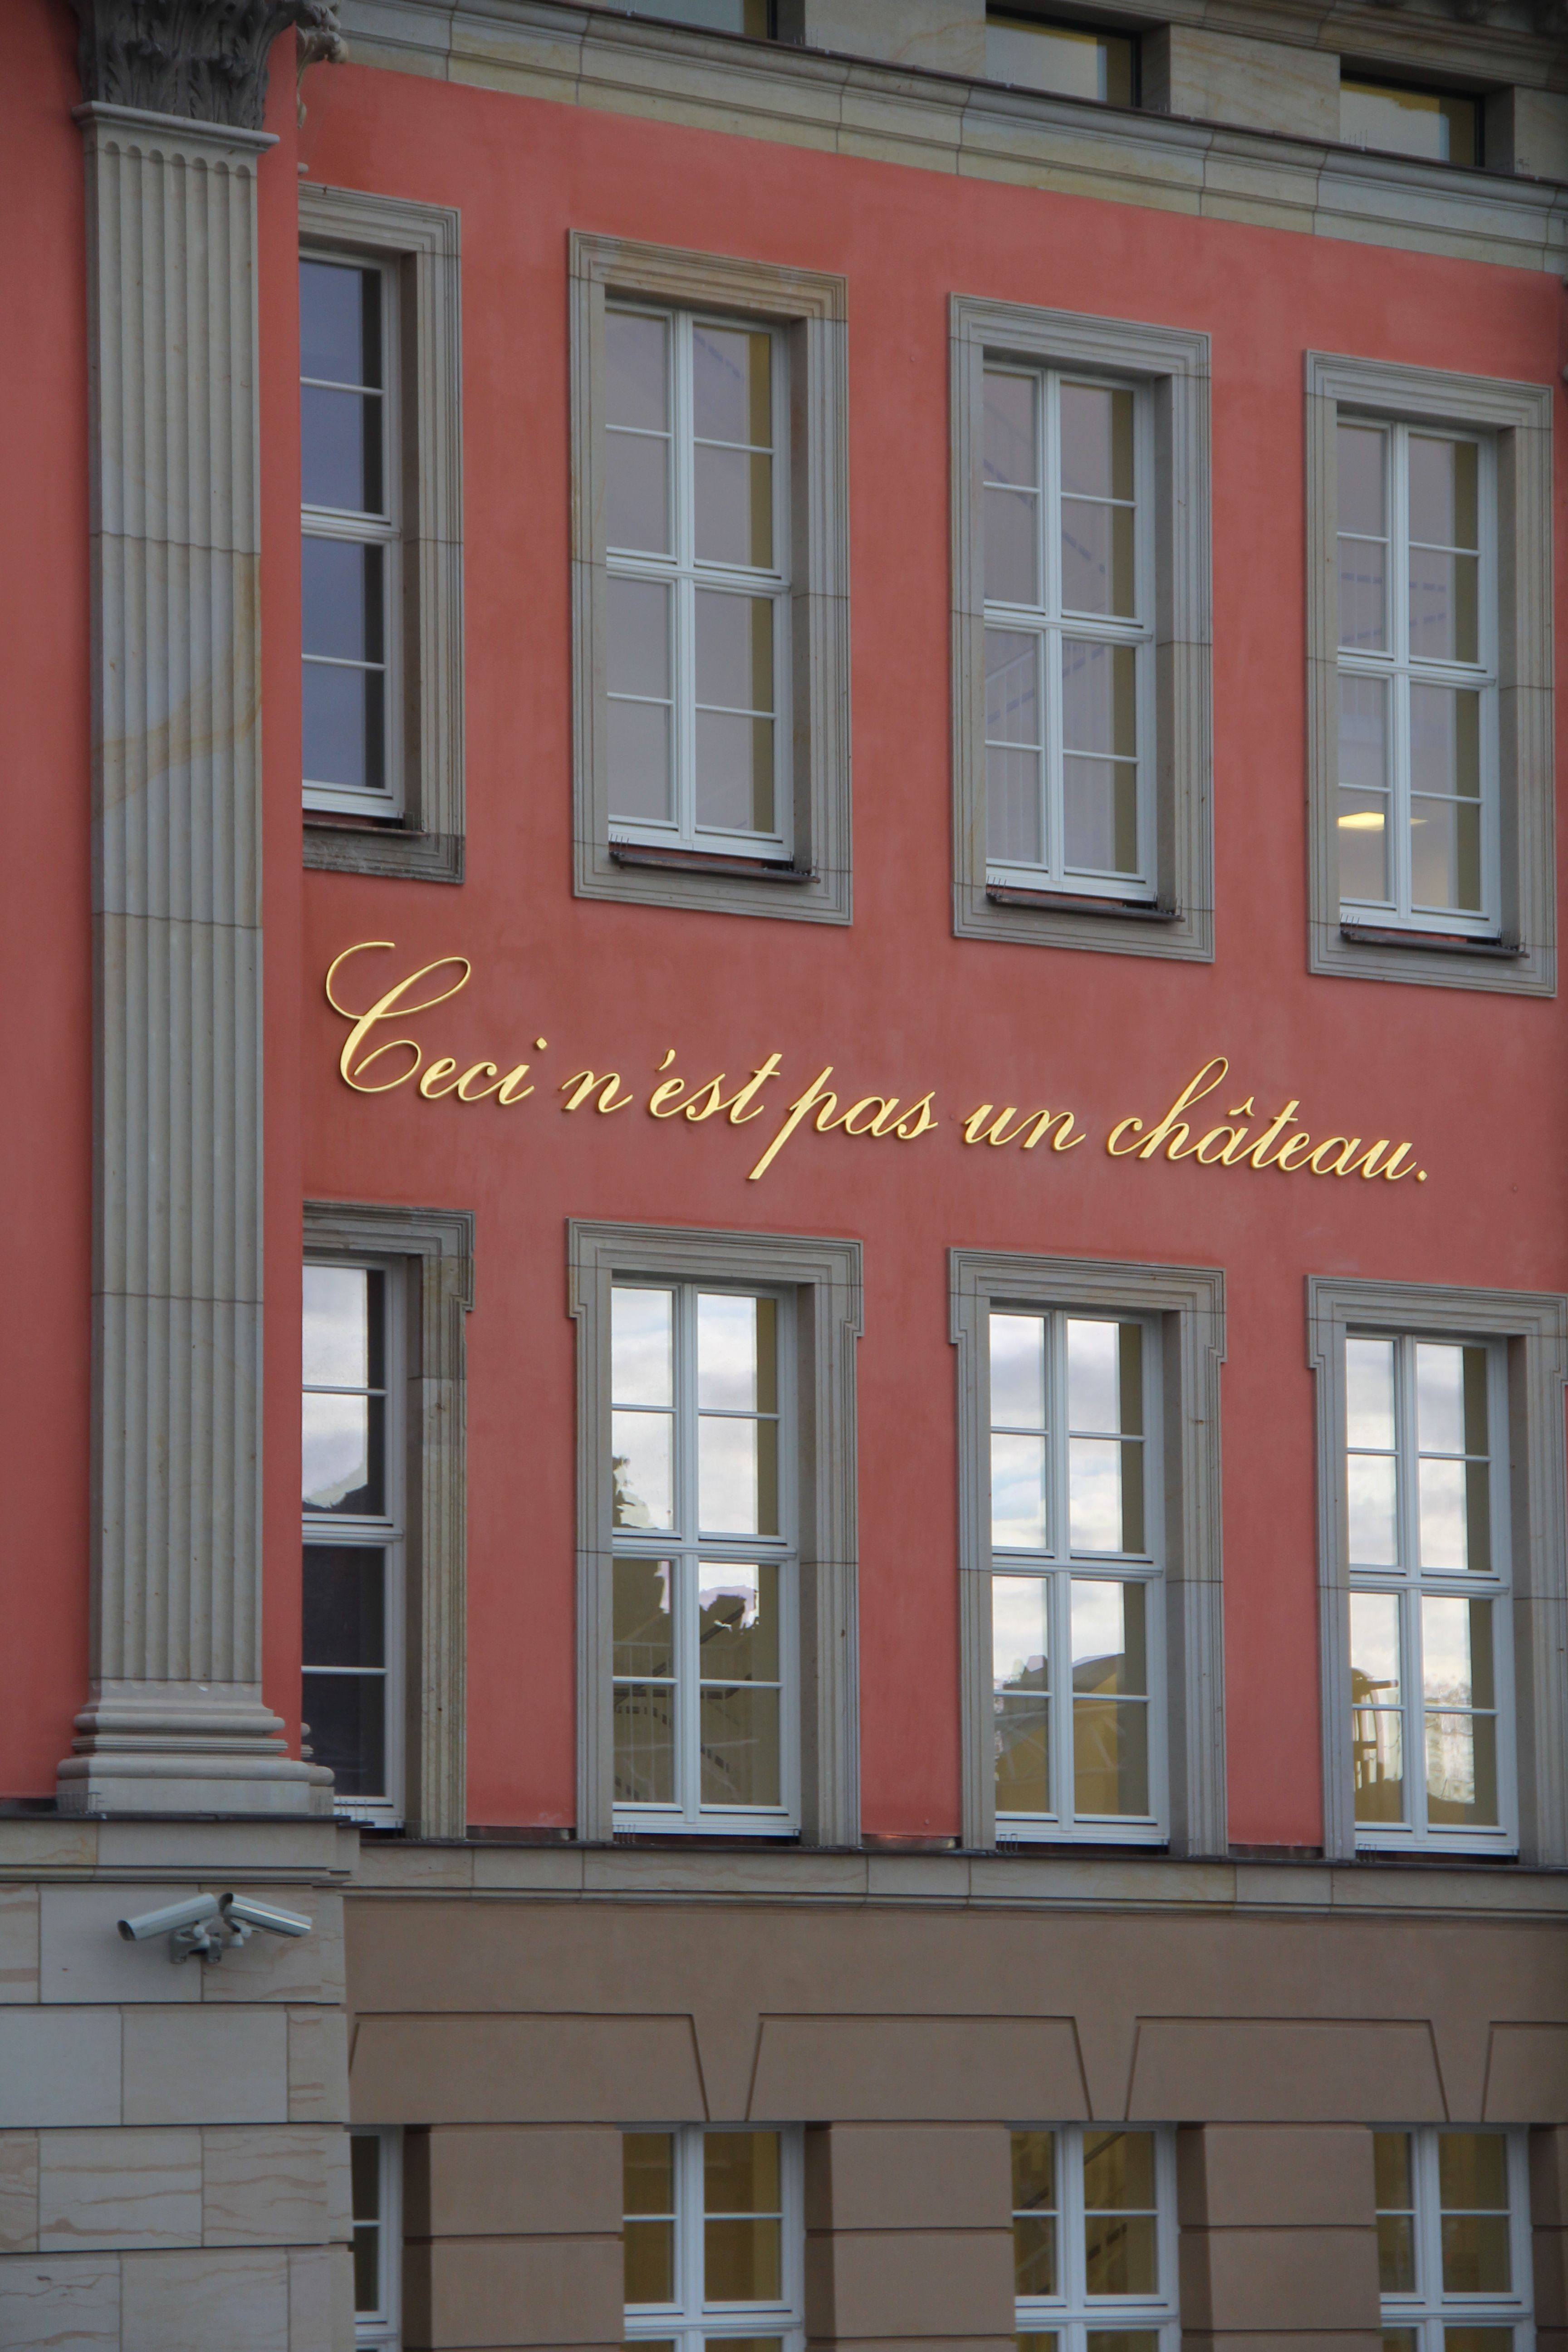 "Brandenburg State Parliament: ""Ceci n'est pas un château"". Installation: Annette Paul; Photo: Dominik Juhnke, 2013, License: [https://creativecommons.org/licenses/by-nc/3.0/de/ CC BY-NC 3.0 DE]<br />"